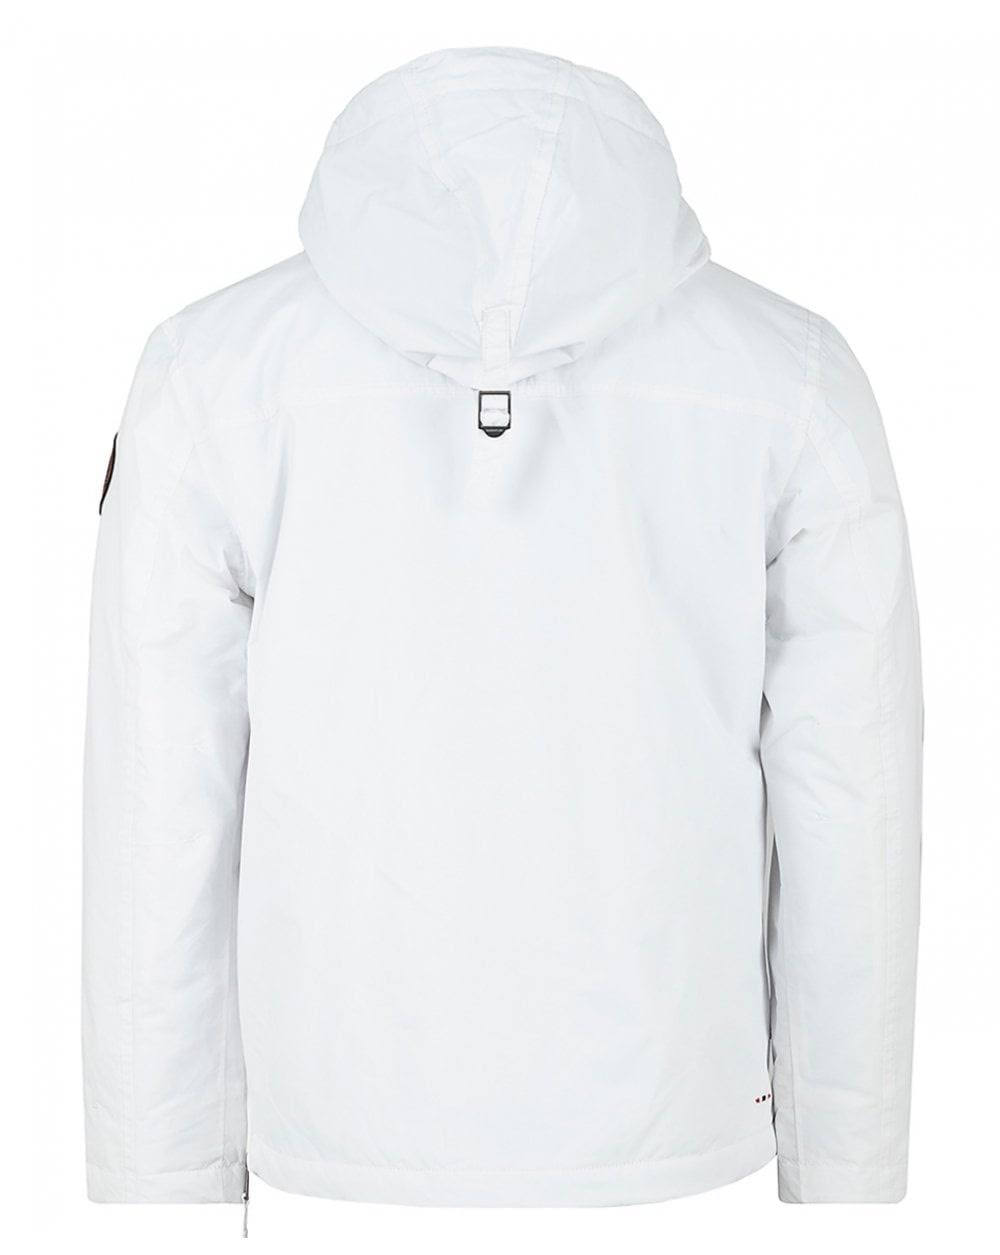 Farbe Pullover Größe Jacket White Rainforest Bright Napapijri Winter xEPIfaq